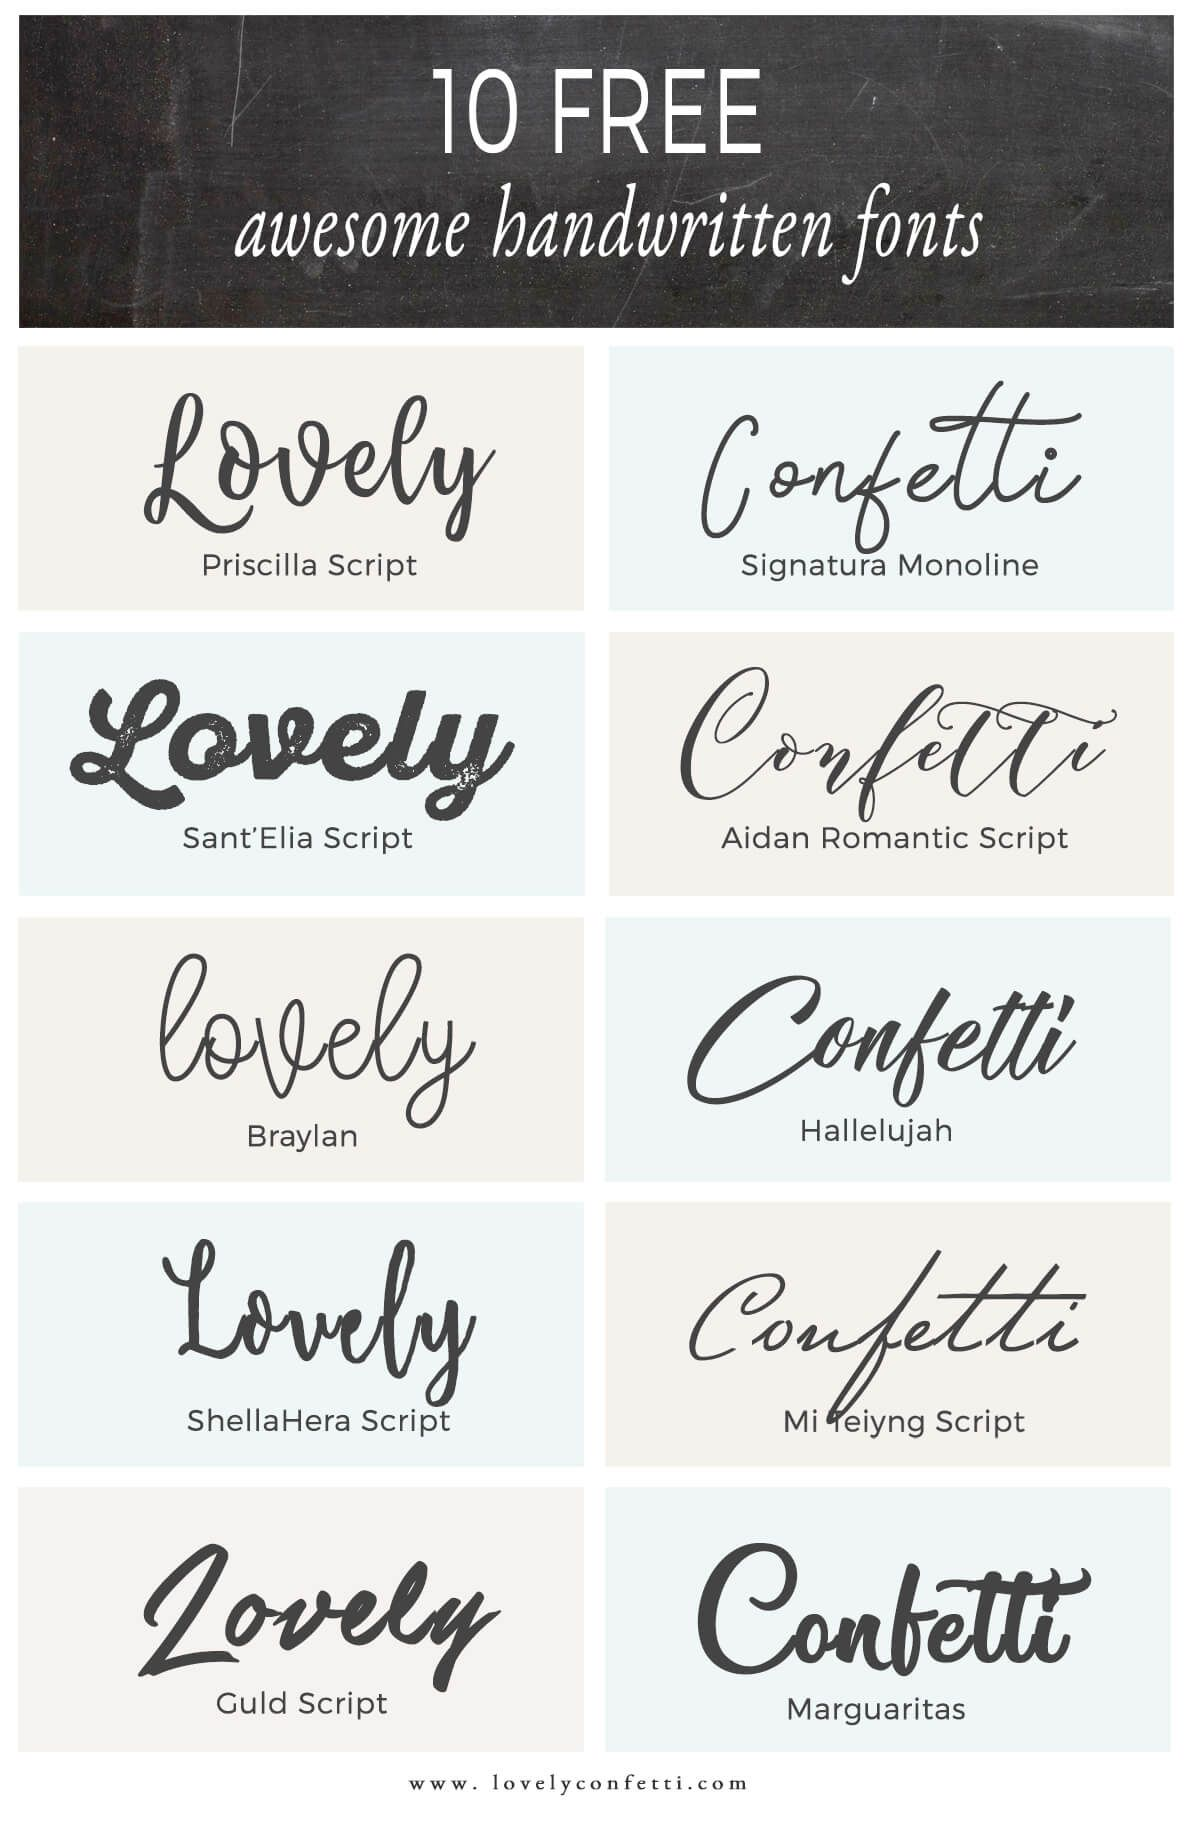 Free awesome handwritten fonts design